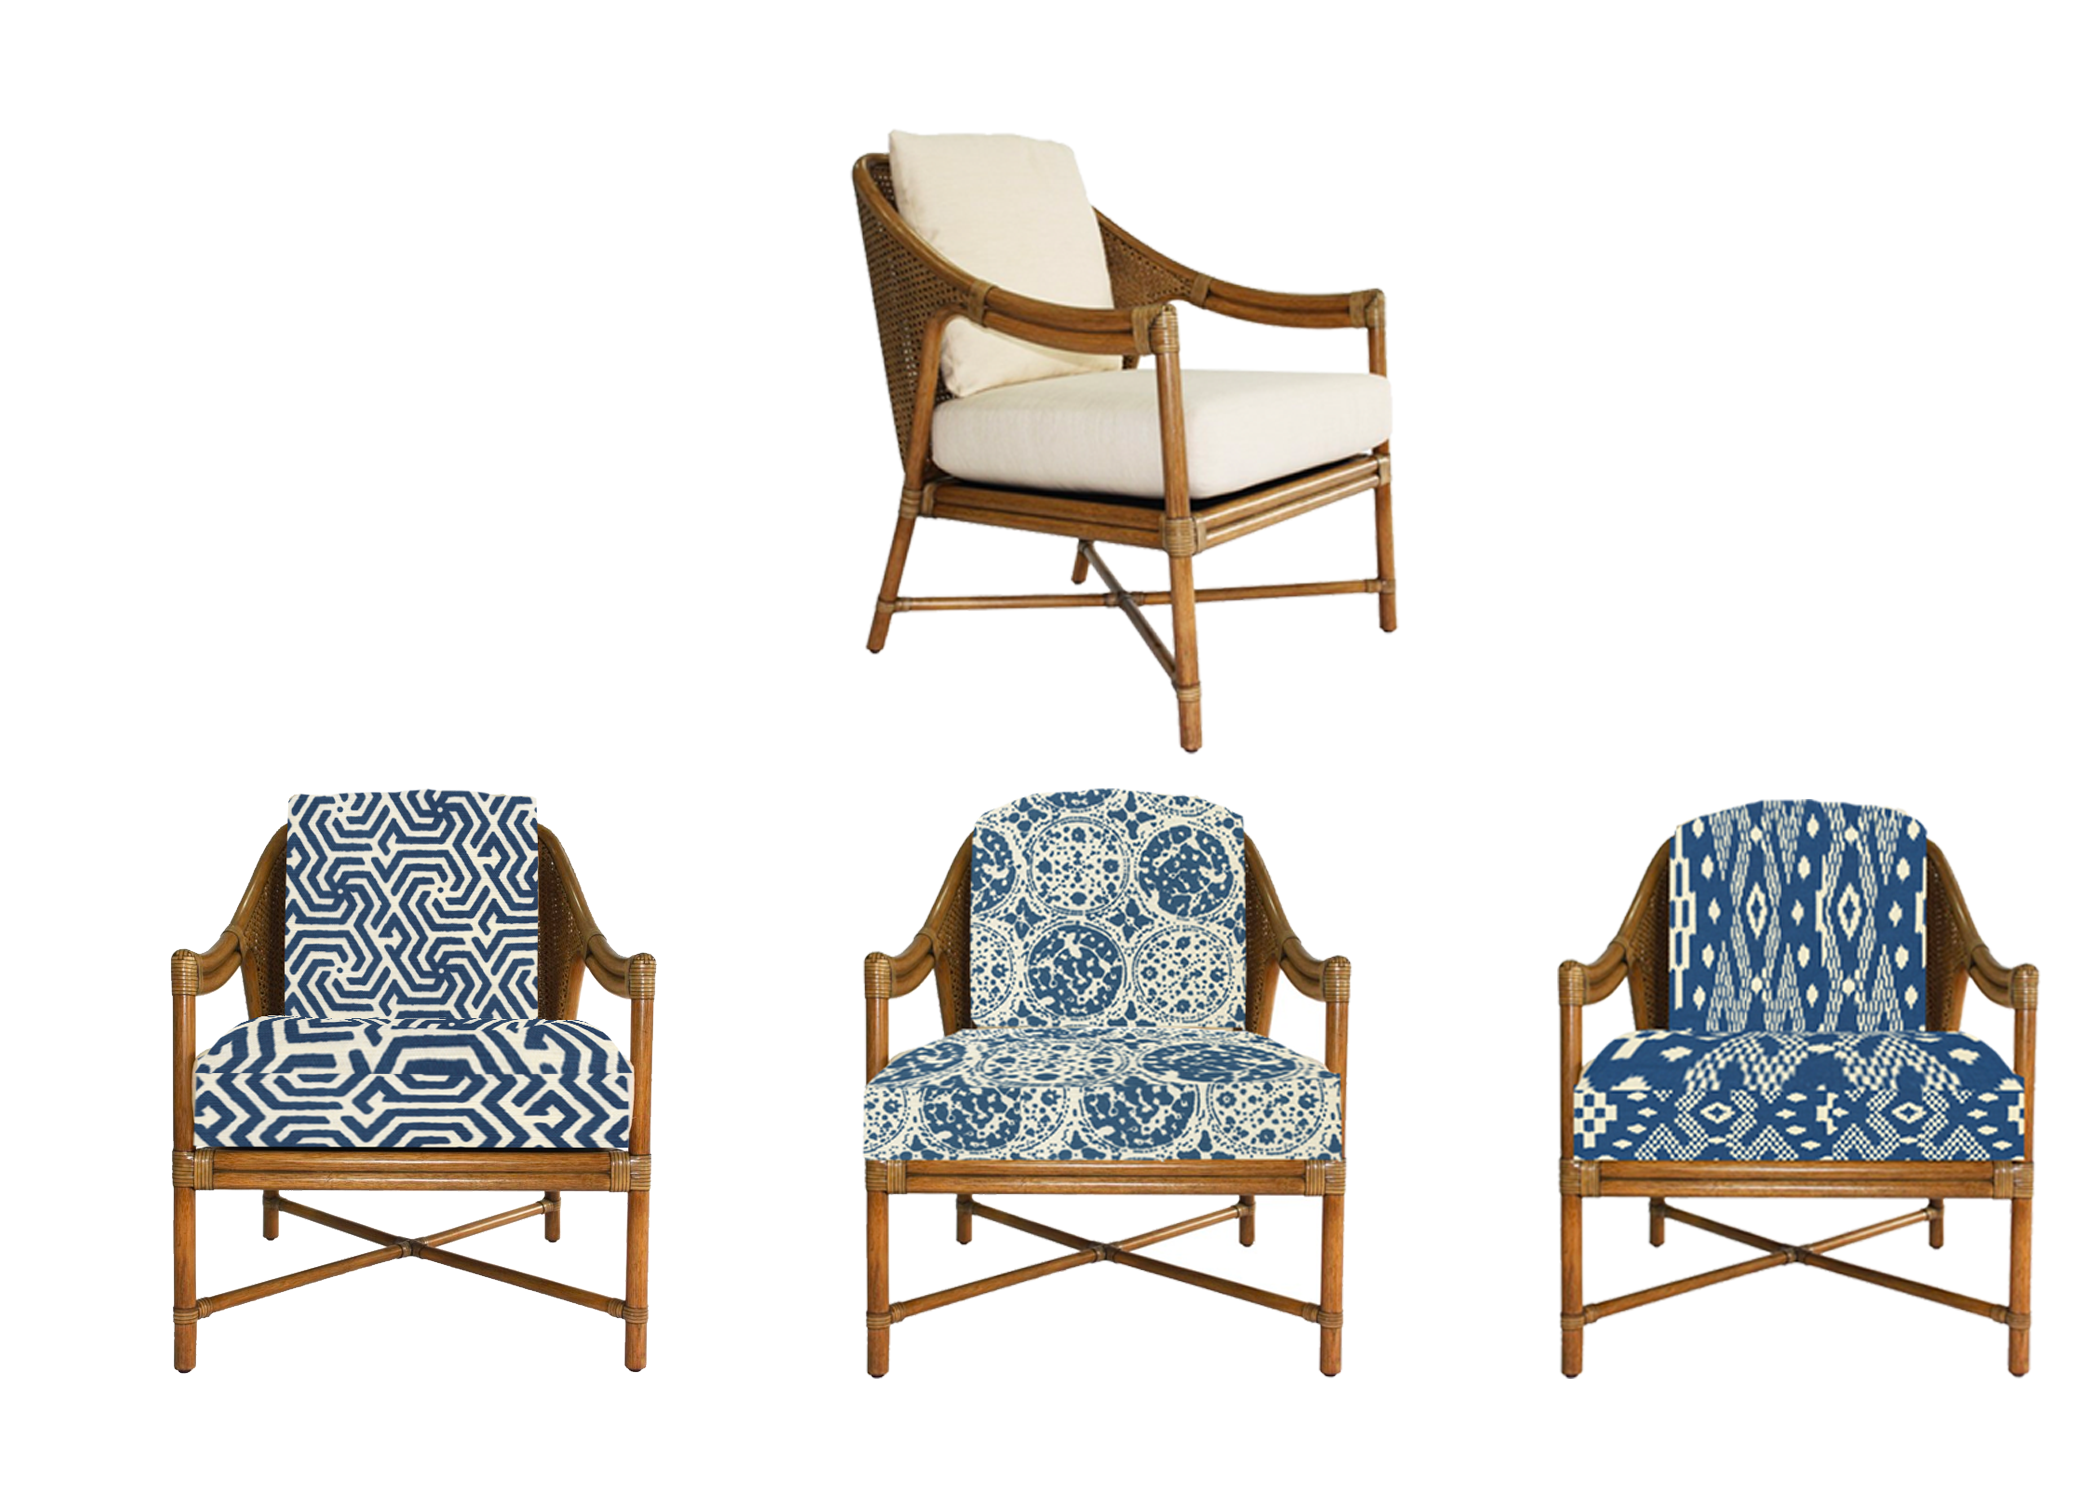 The Linwood Chair from Selamat Designs